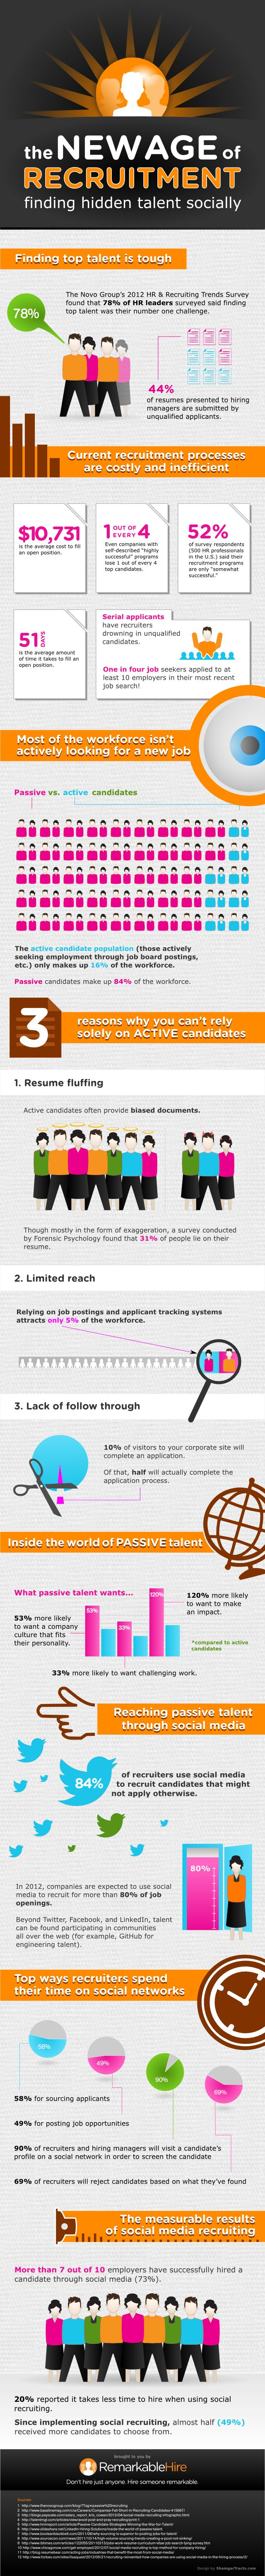 Always so interesting RT @MikeChuidian How #Recruiters Are Using #SocialMedia To Find (And Hire) Hidden Talent